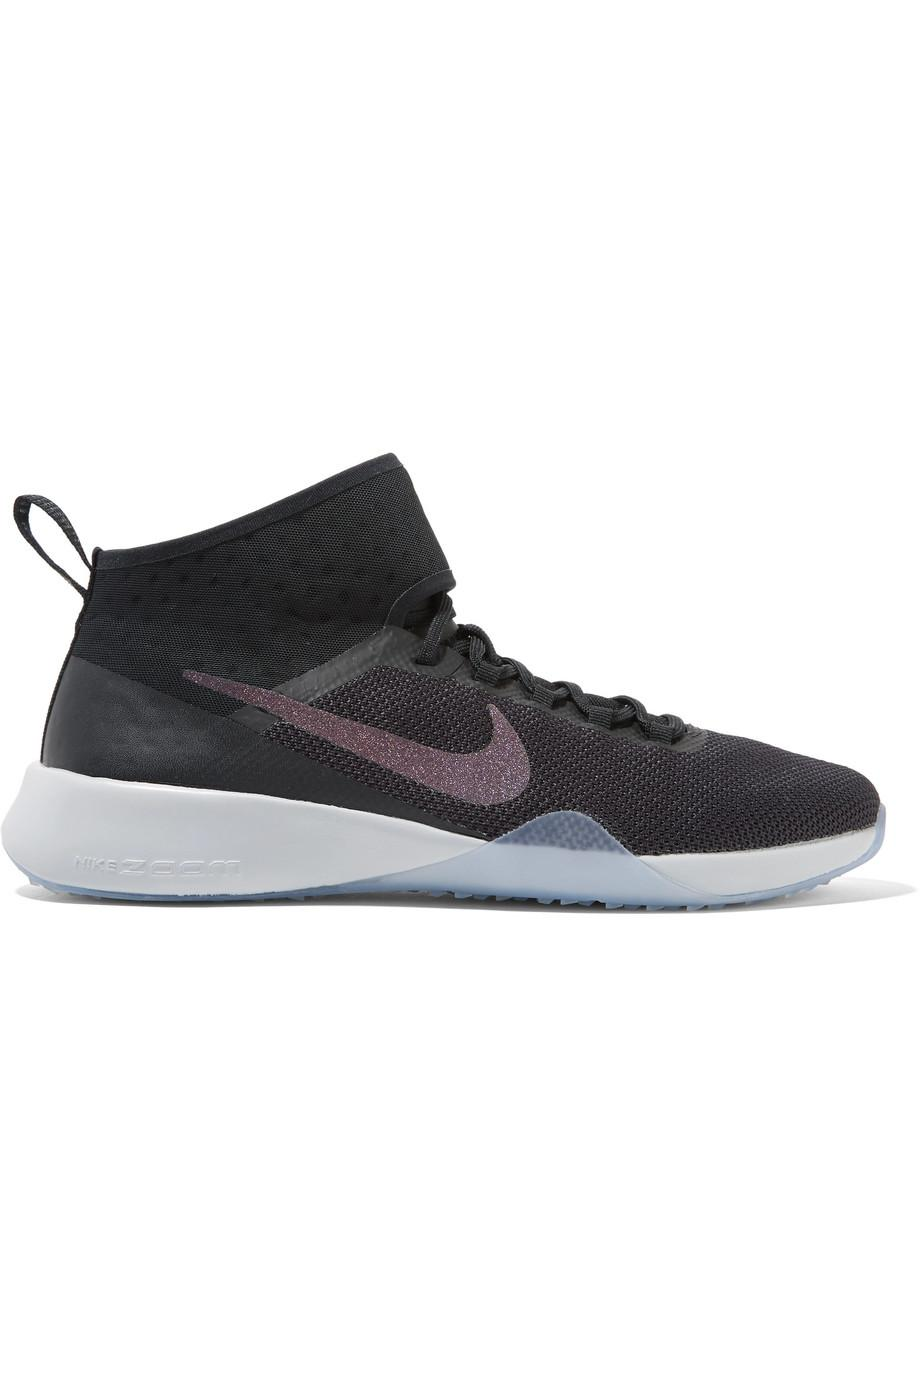 Outlet Fast Delivery Air Zoom Strong 2 Metallic Mesh And Rubber Sneakers - Black Nike Perfect Online K1zoFL0